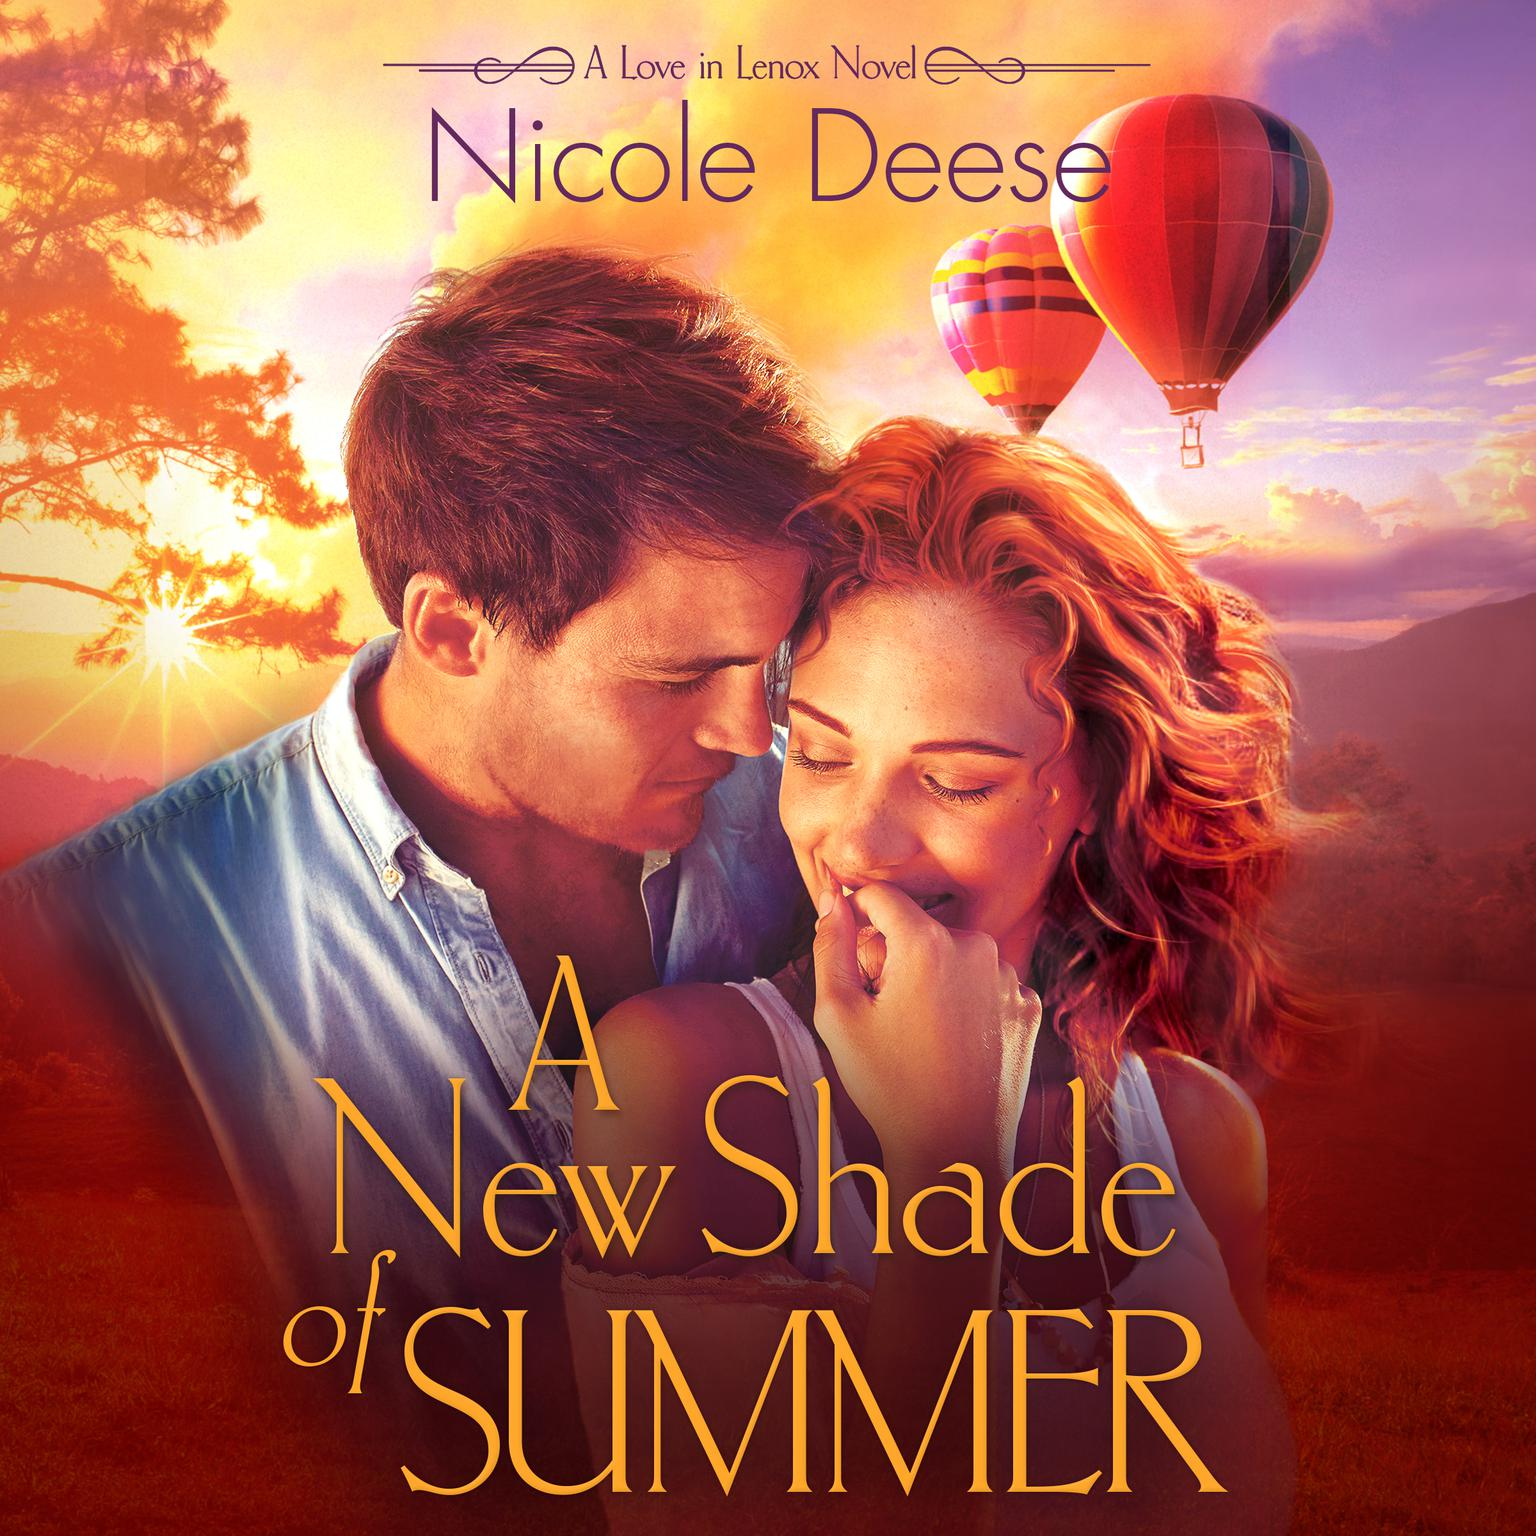 Printable A New Shade of Summer Audiobook Cover Art